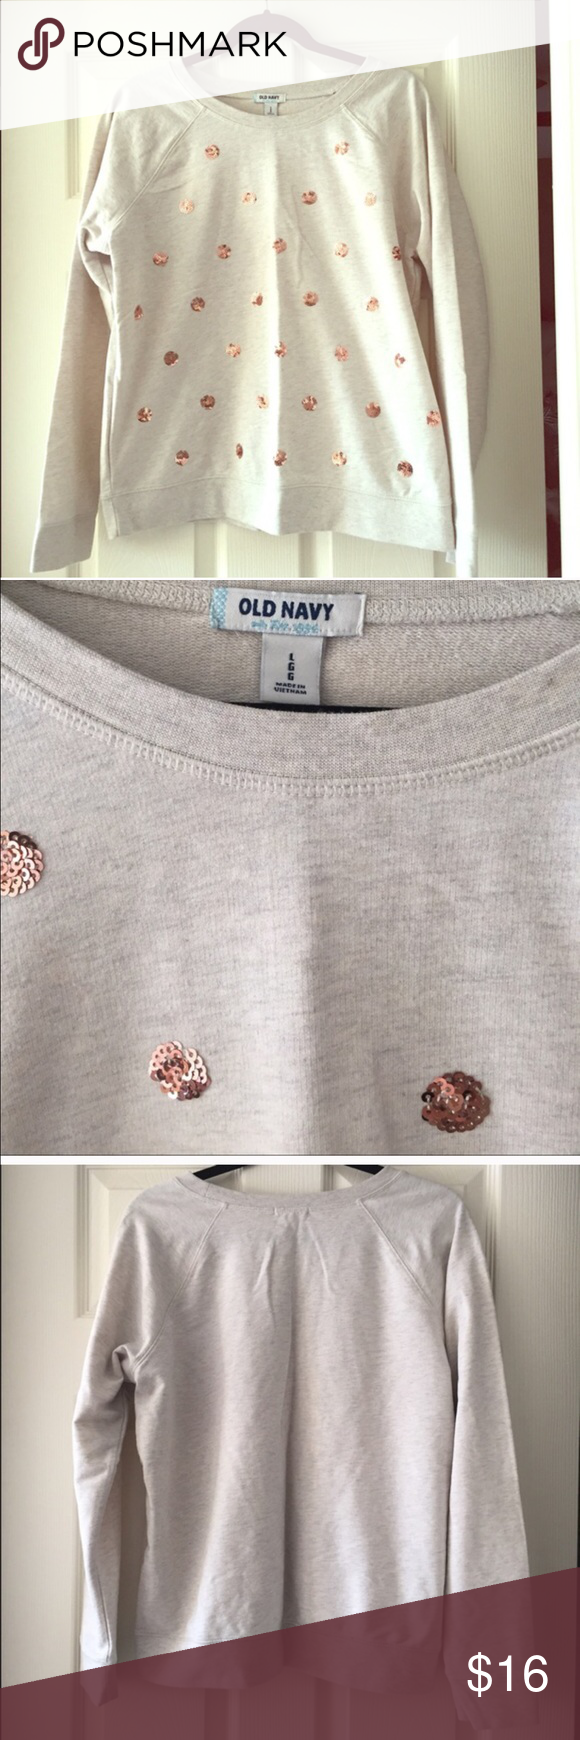 Rose Gold Sequin Polka Dot sweatshirt Good condition! Oatmeal color. Old Navy Tops Sweatshirts & Hoodies